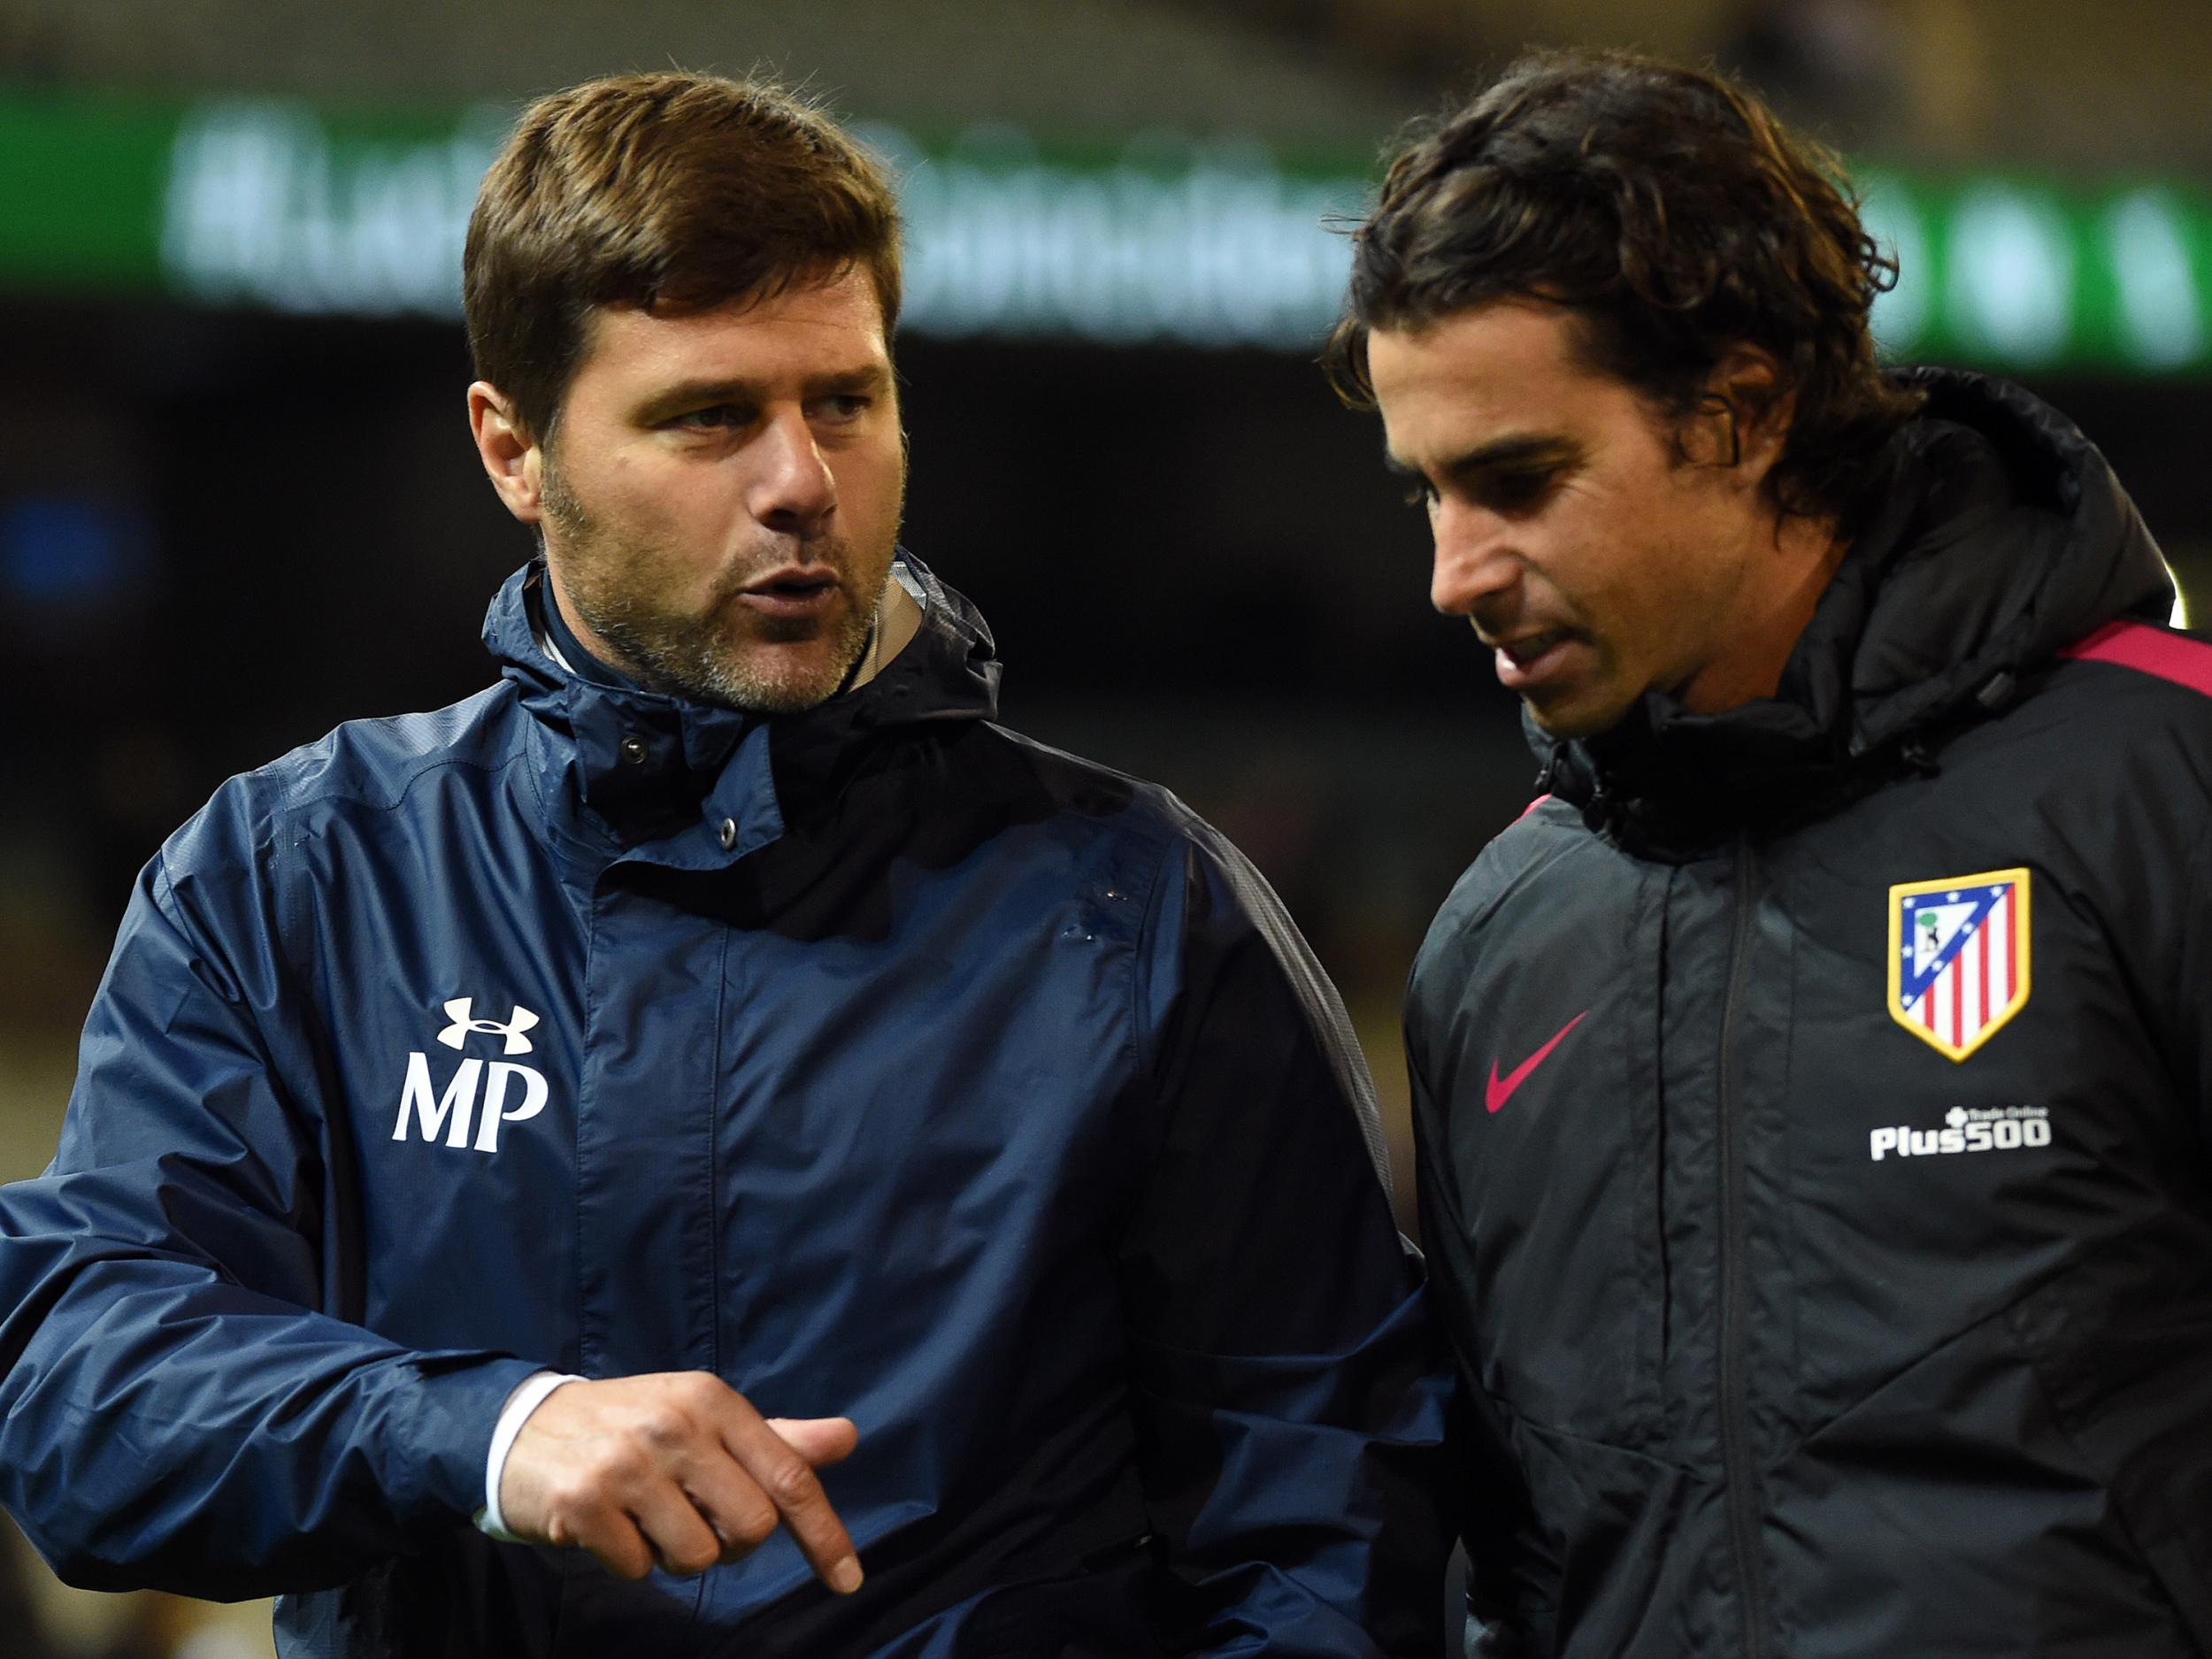 Mauricio Pochettino Wants Tottenham Hotspur To Follow Atletico Madrid S Example In Their Quest For Success The Independent The Independent